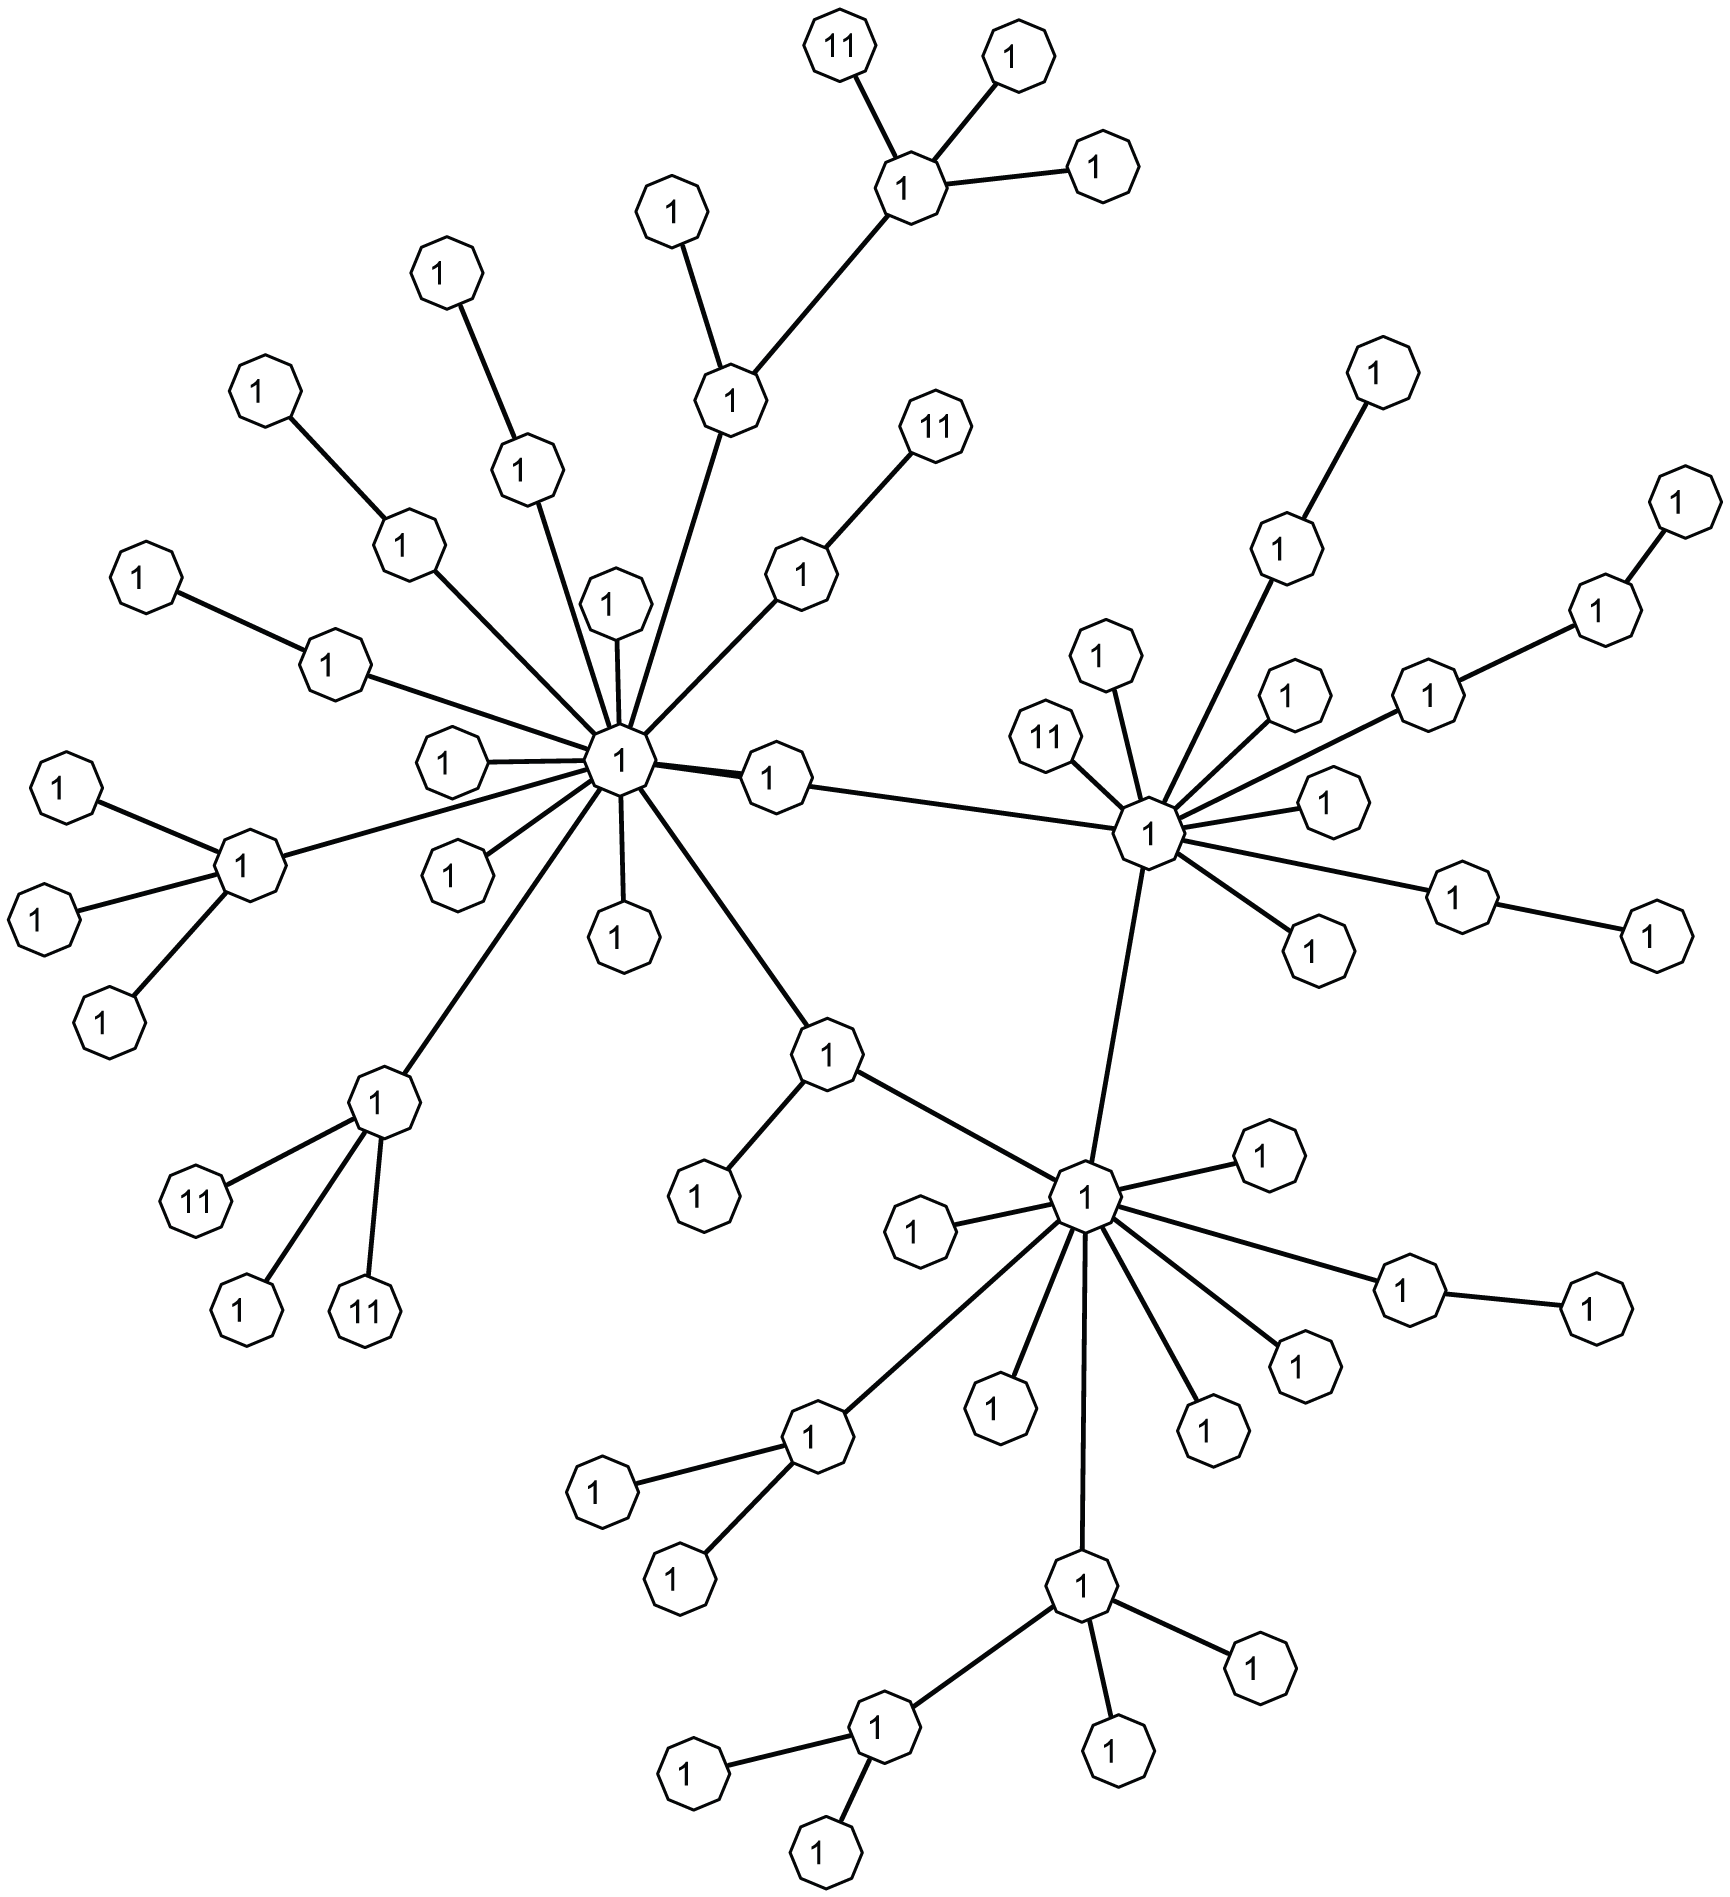 A simulated 60-node network.